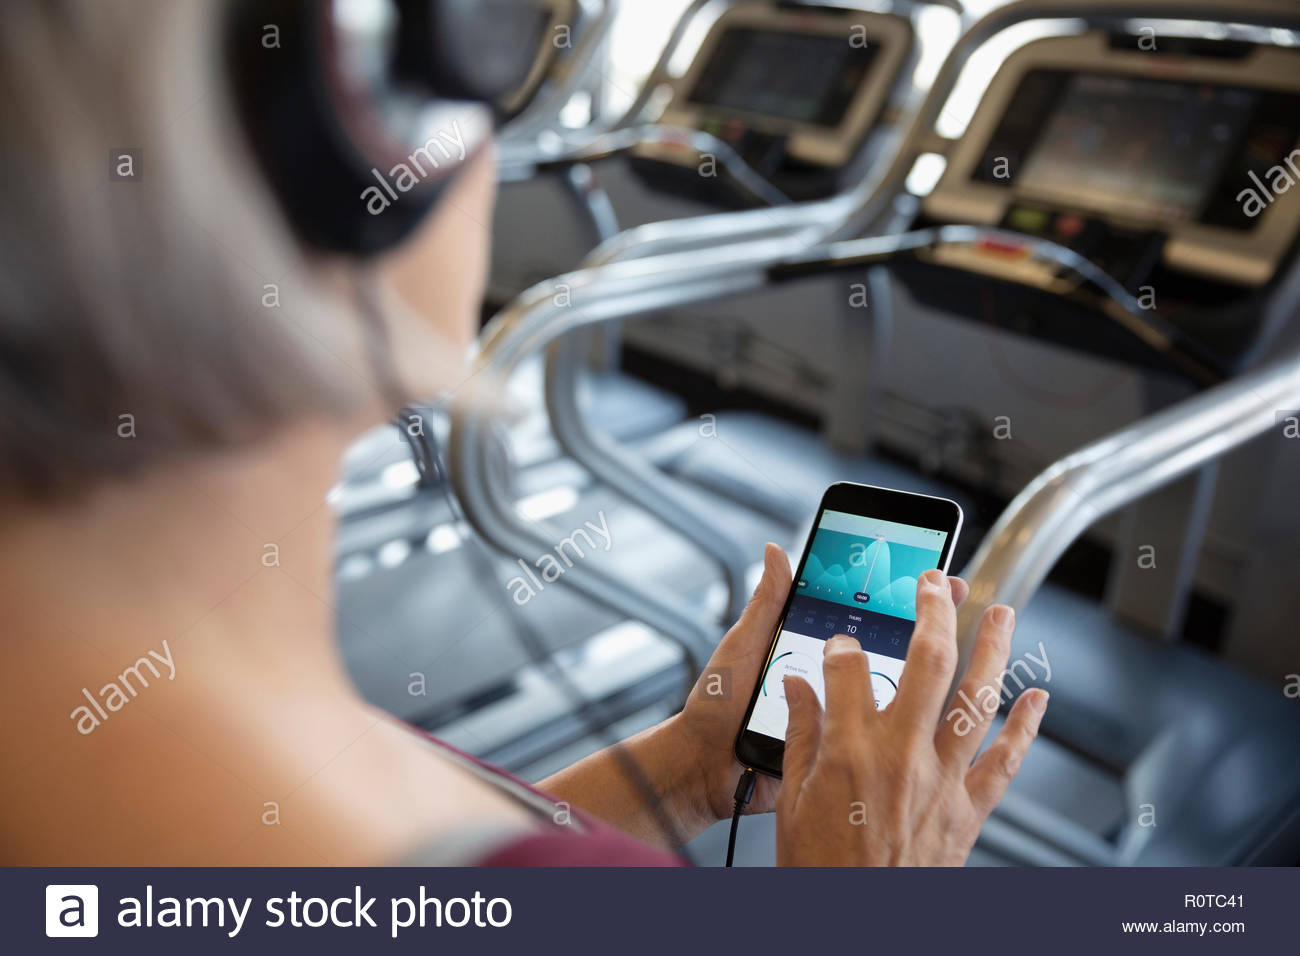 Woman checking fitness tracker on smart phone at treadmill in gym - Stock Image